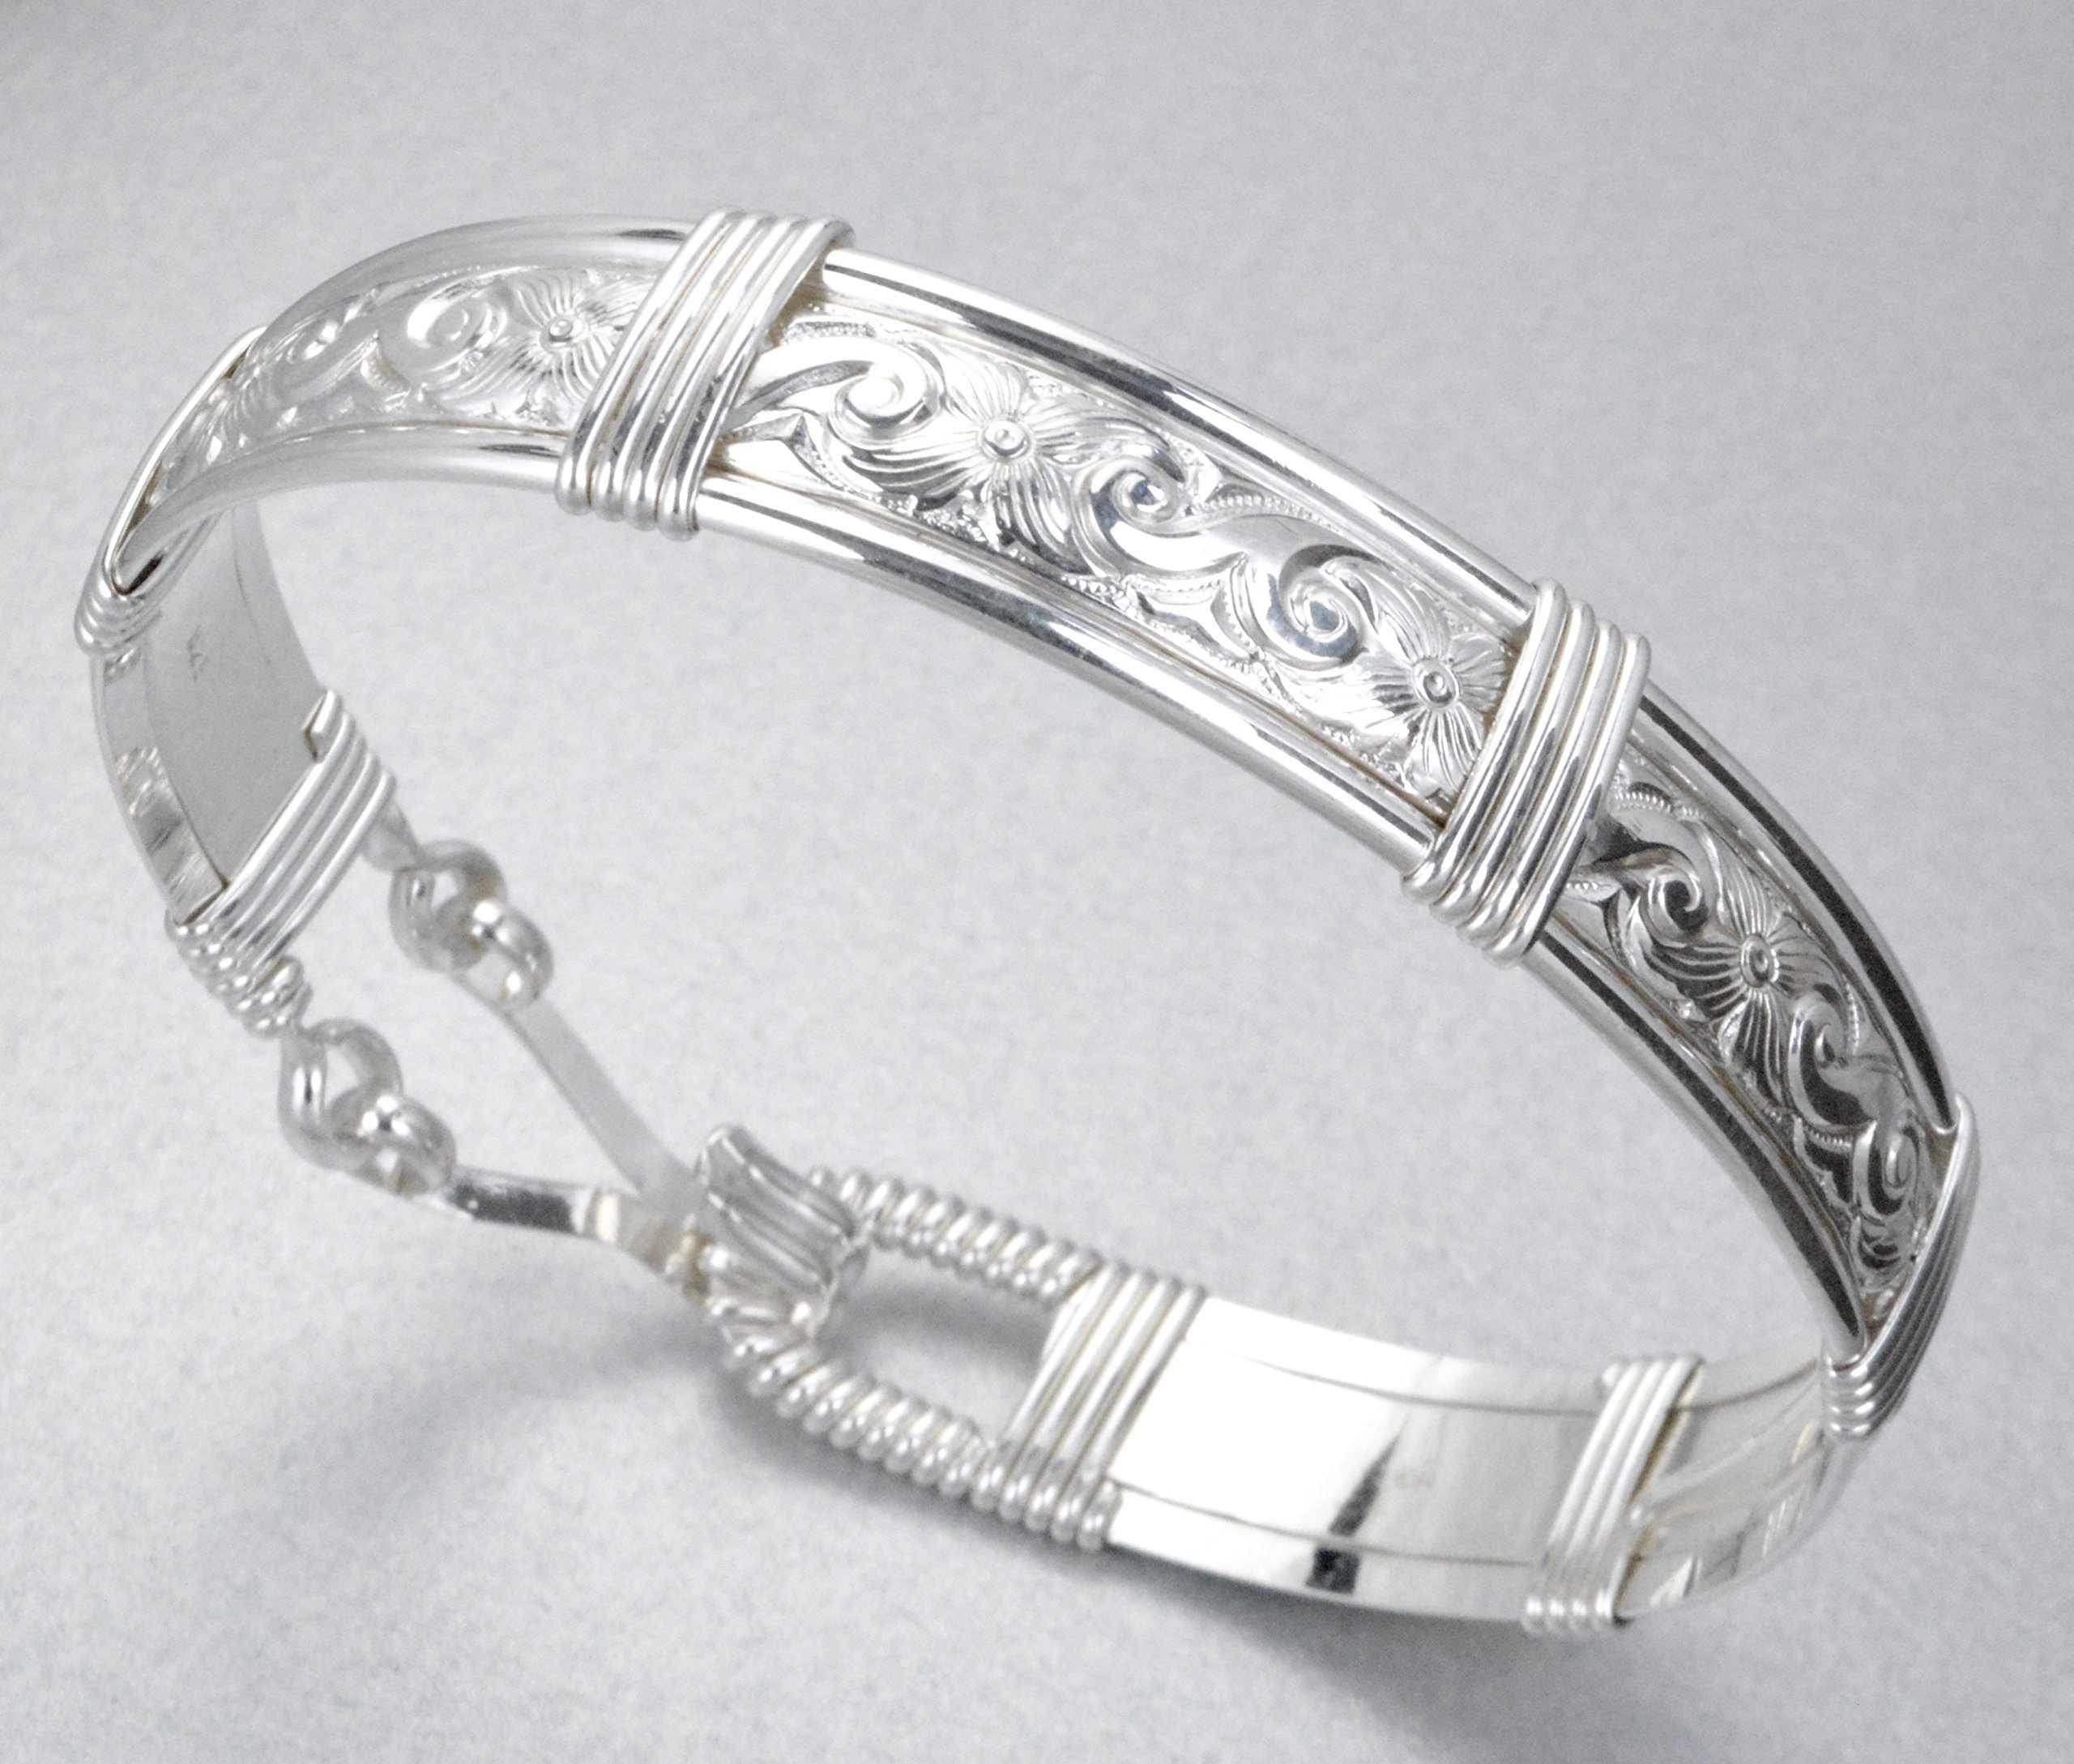 Custom Made For YOU! Made In Alaska 925 Sterling Silver Waves & Flowers Patterned Wire Wrapped Bracelet